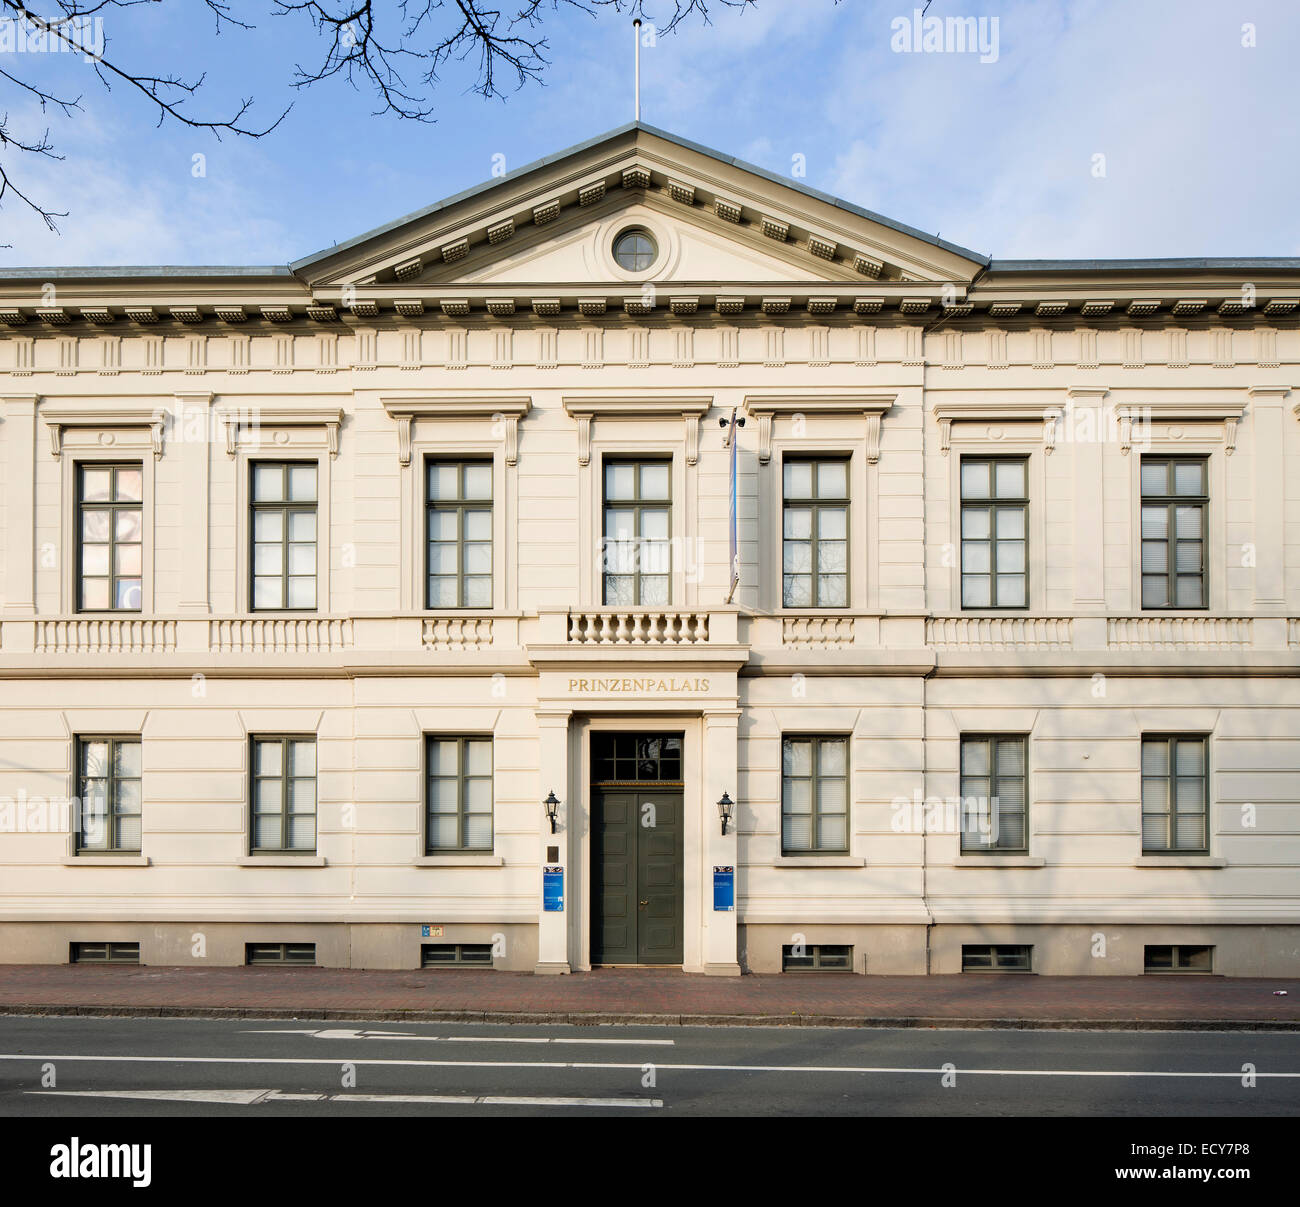 Former Oldenburg Prinzenpalais, now the State Museum for Art and Cultural History with the New Master Gallery, Oldenburg - Stock Image